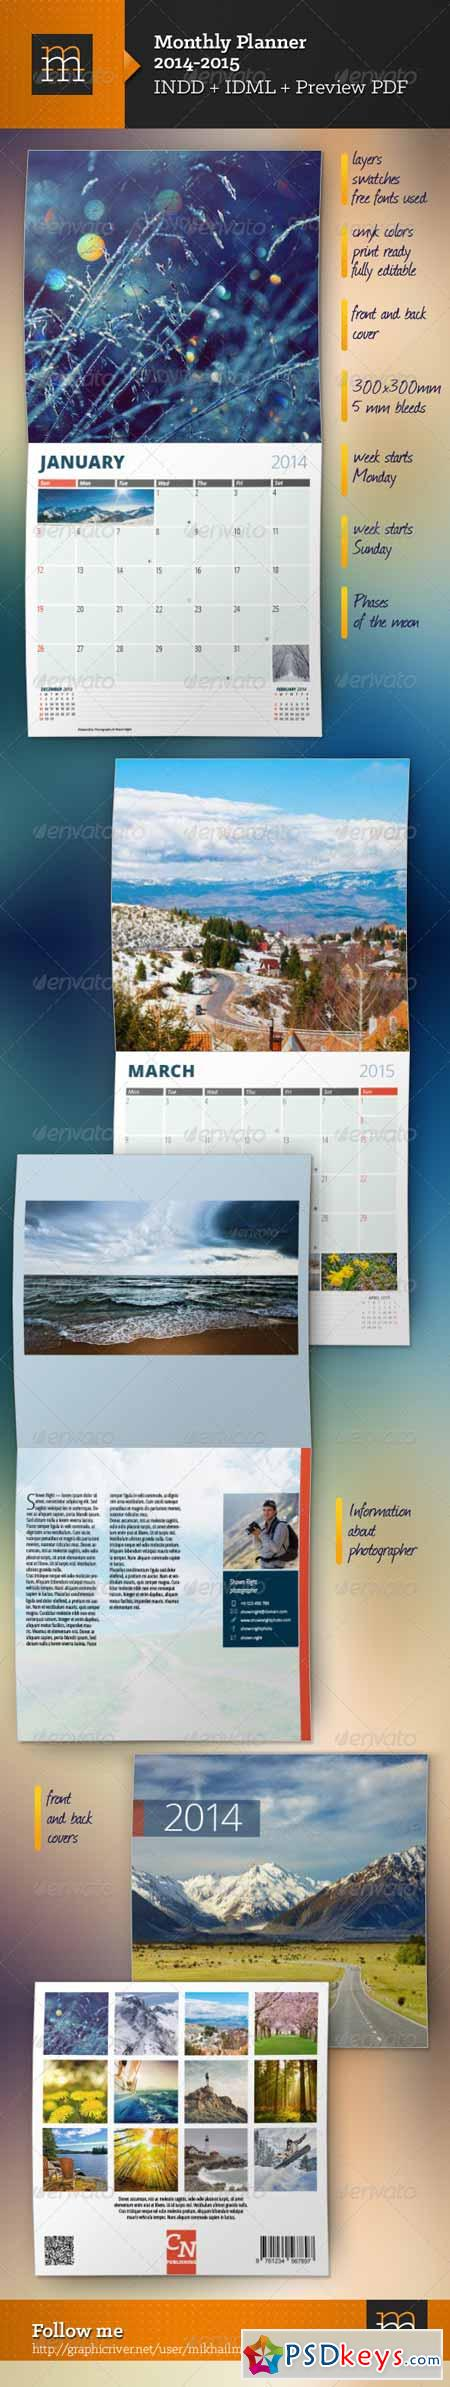 Monthly Planner 2014+2015 5965517